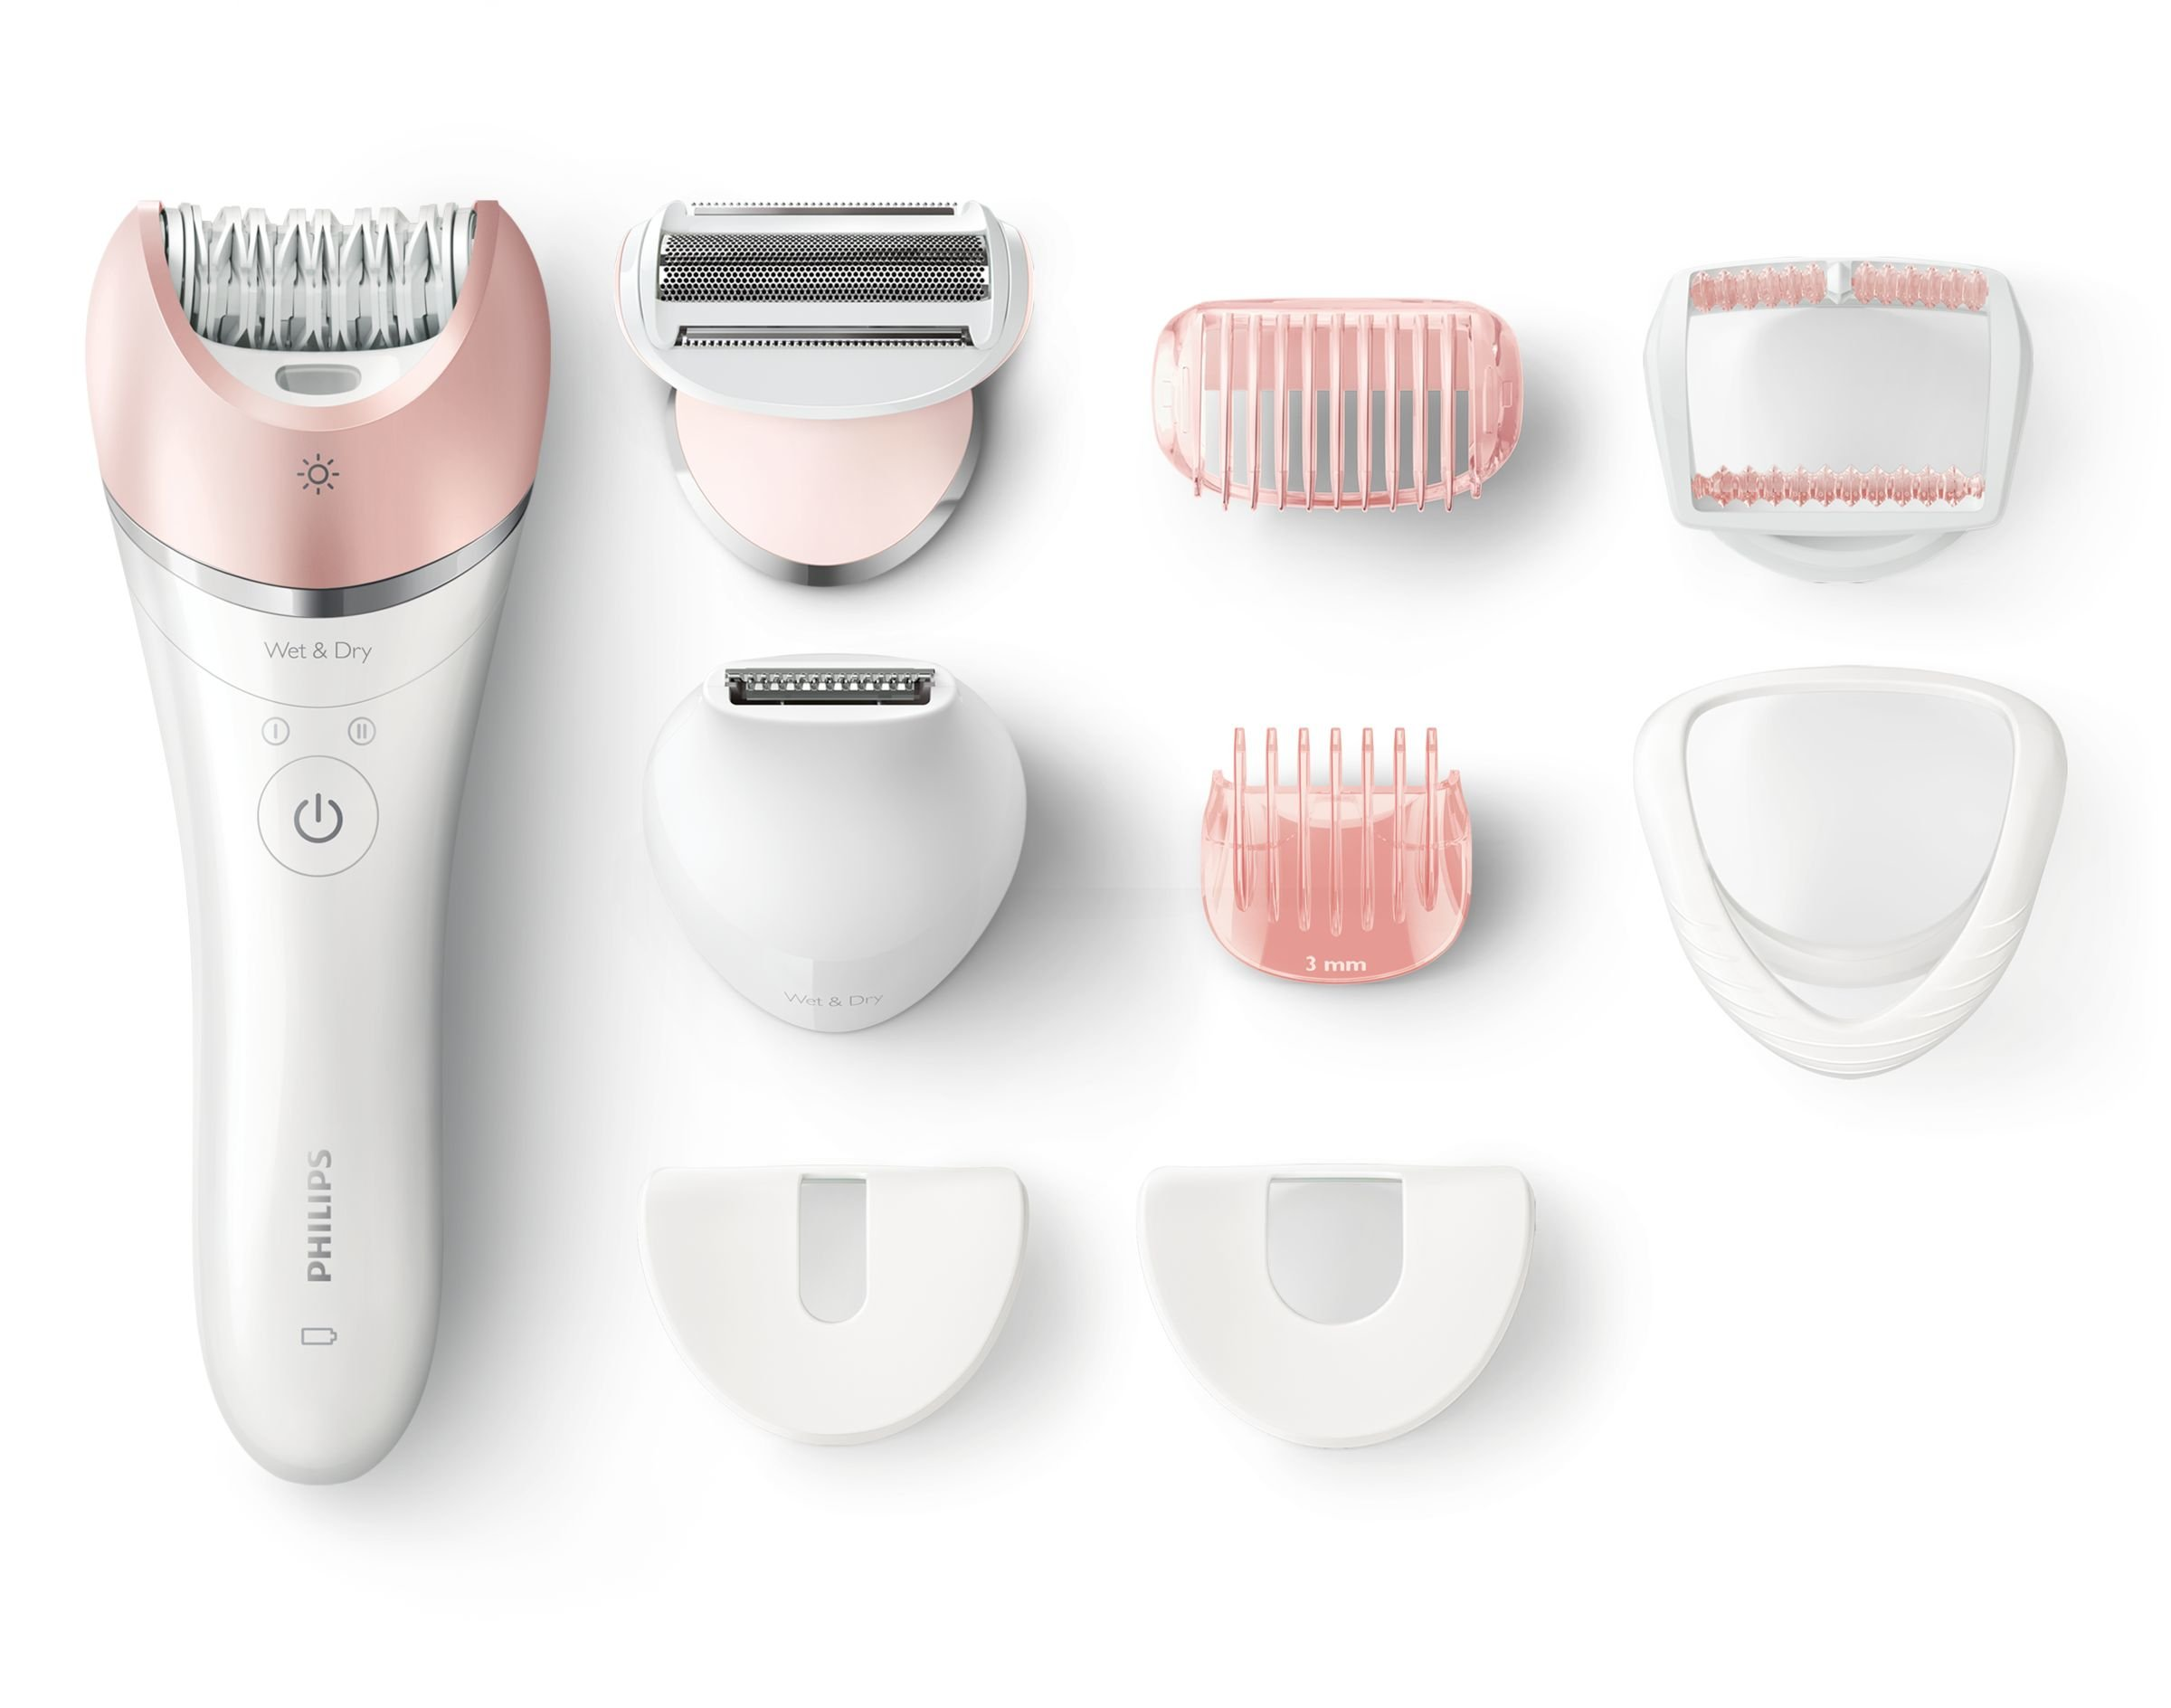 Philips Satinelle Advanced Wet & Dry cordless 10-Piece Epilator Kit by PHILIPS